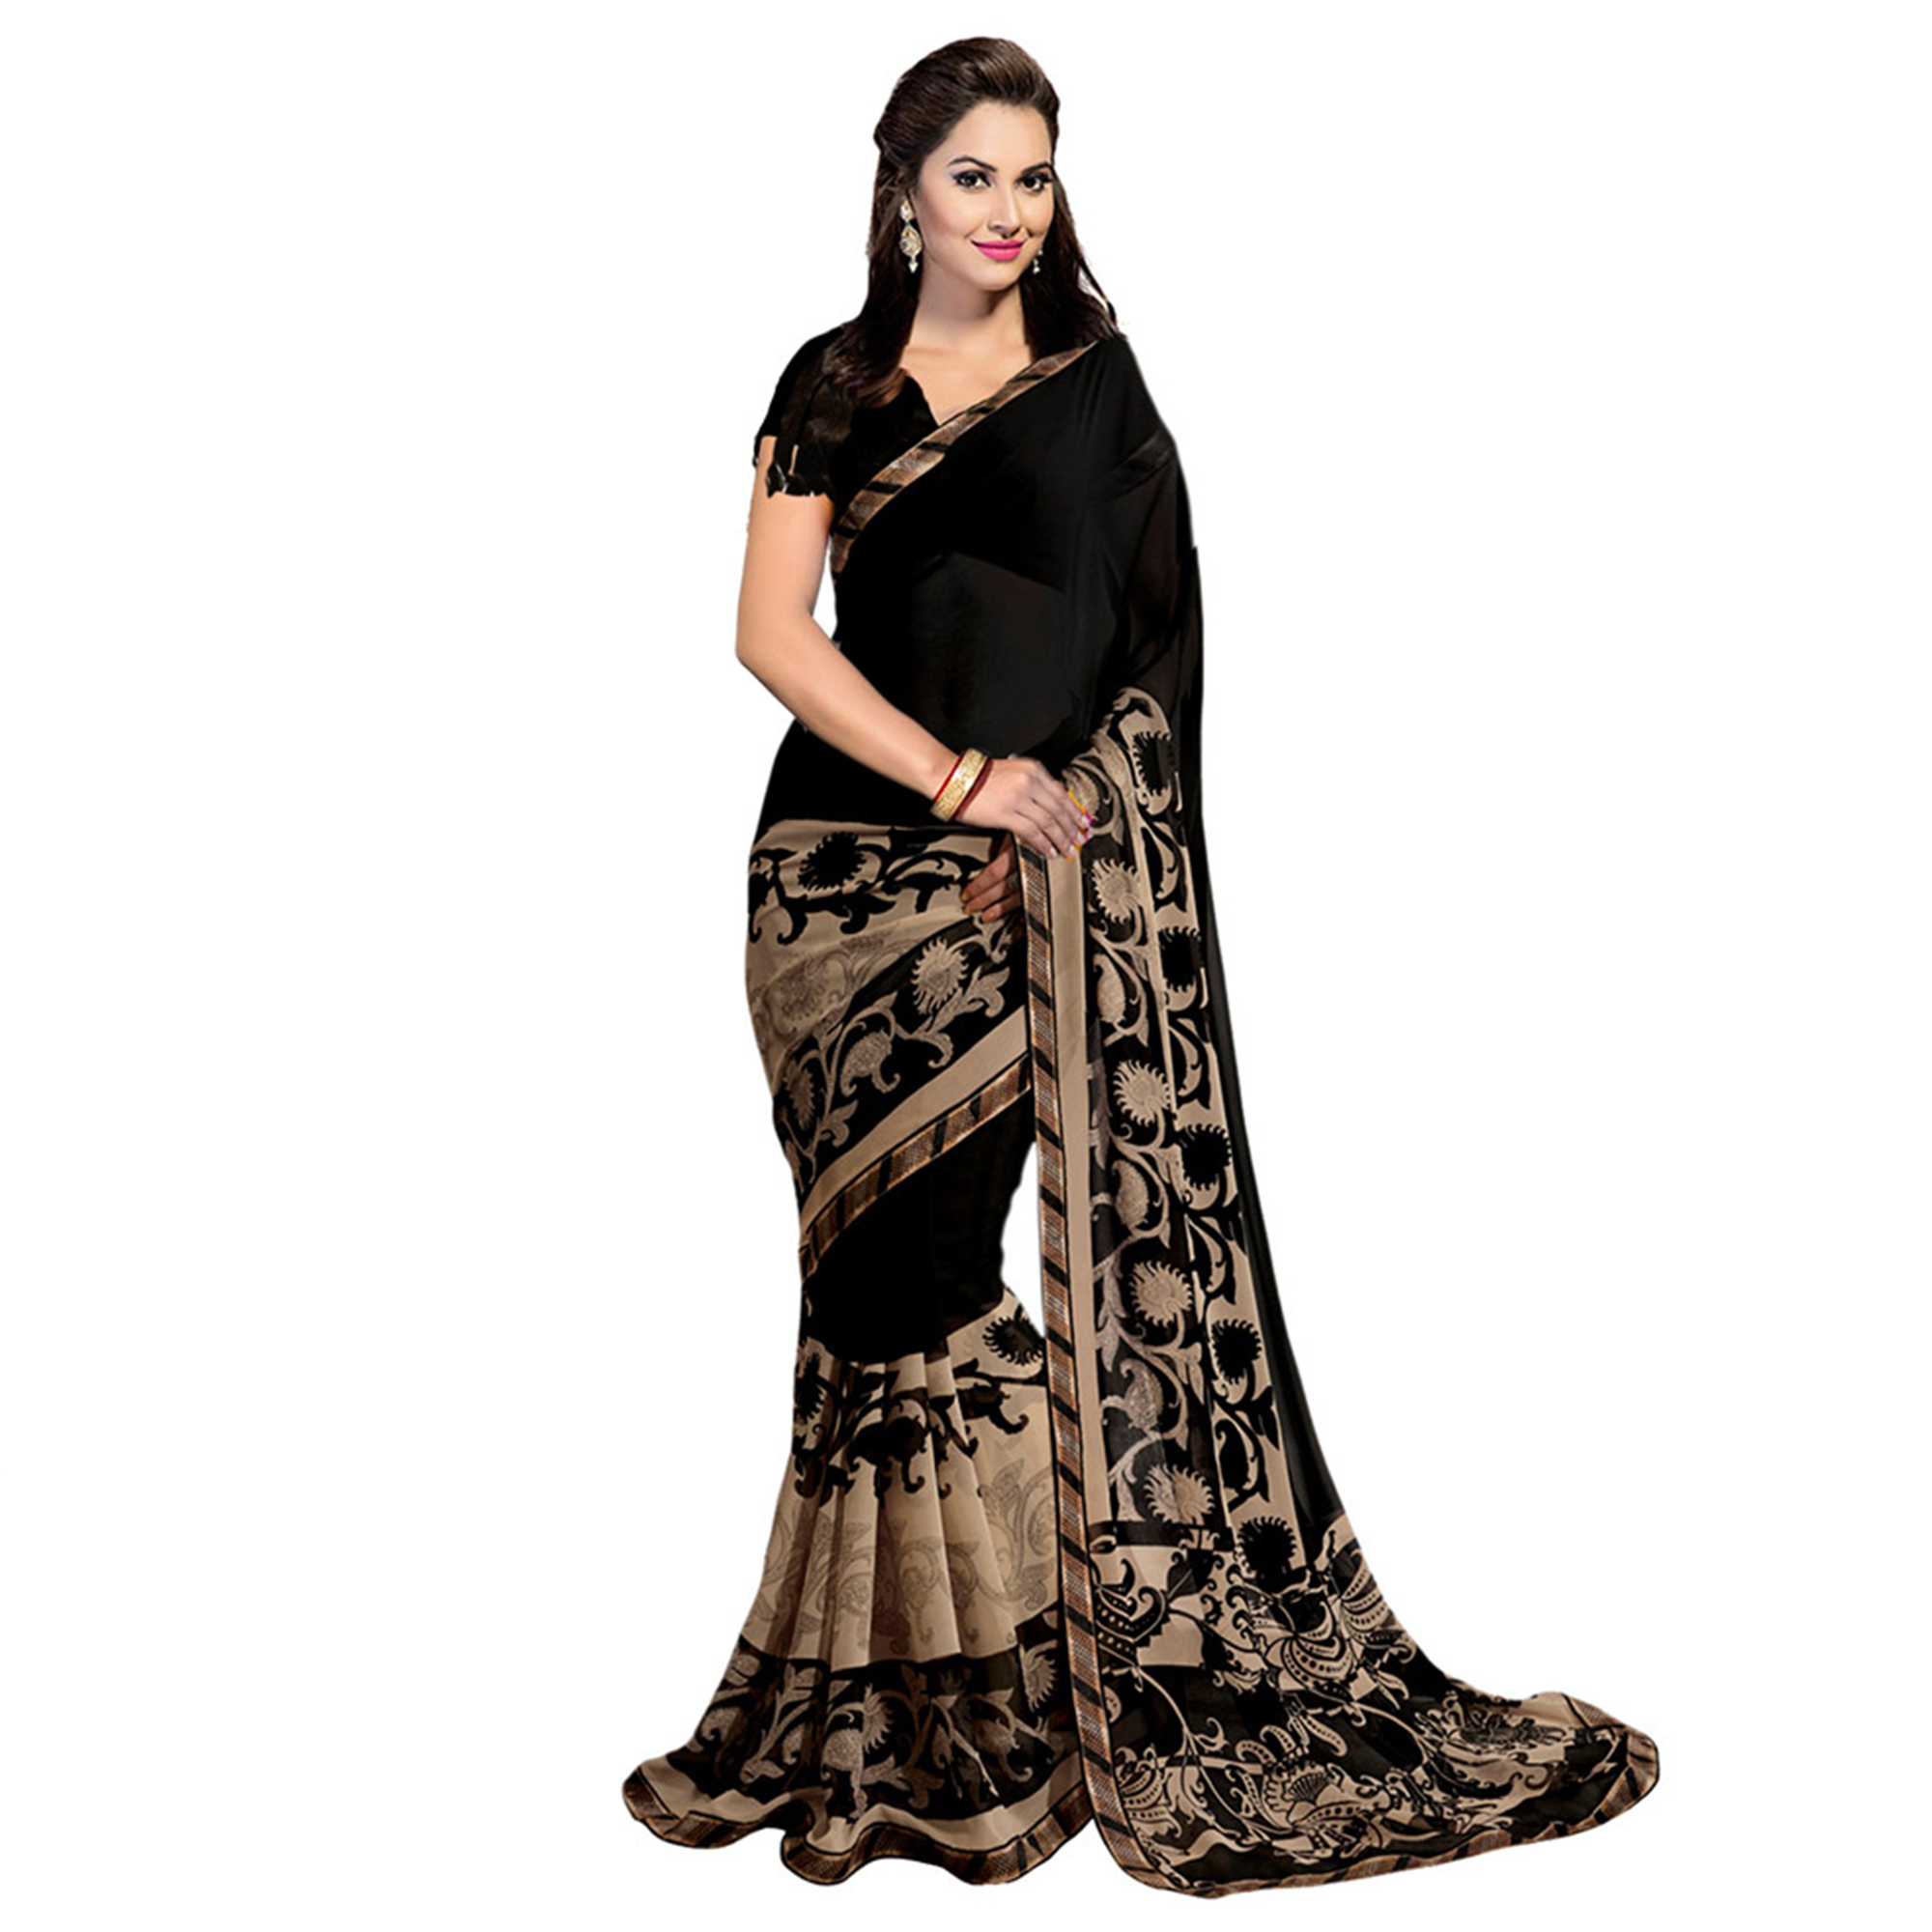 168ae39f50 Buy Mesmerising Casual Printed Georgette Saree - Pack of 2 for womens  online India, Best Prices, Reviews - peachmode